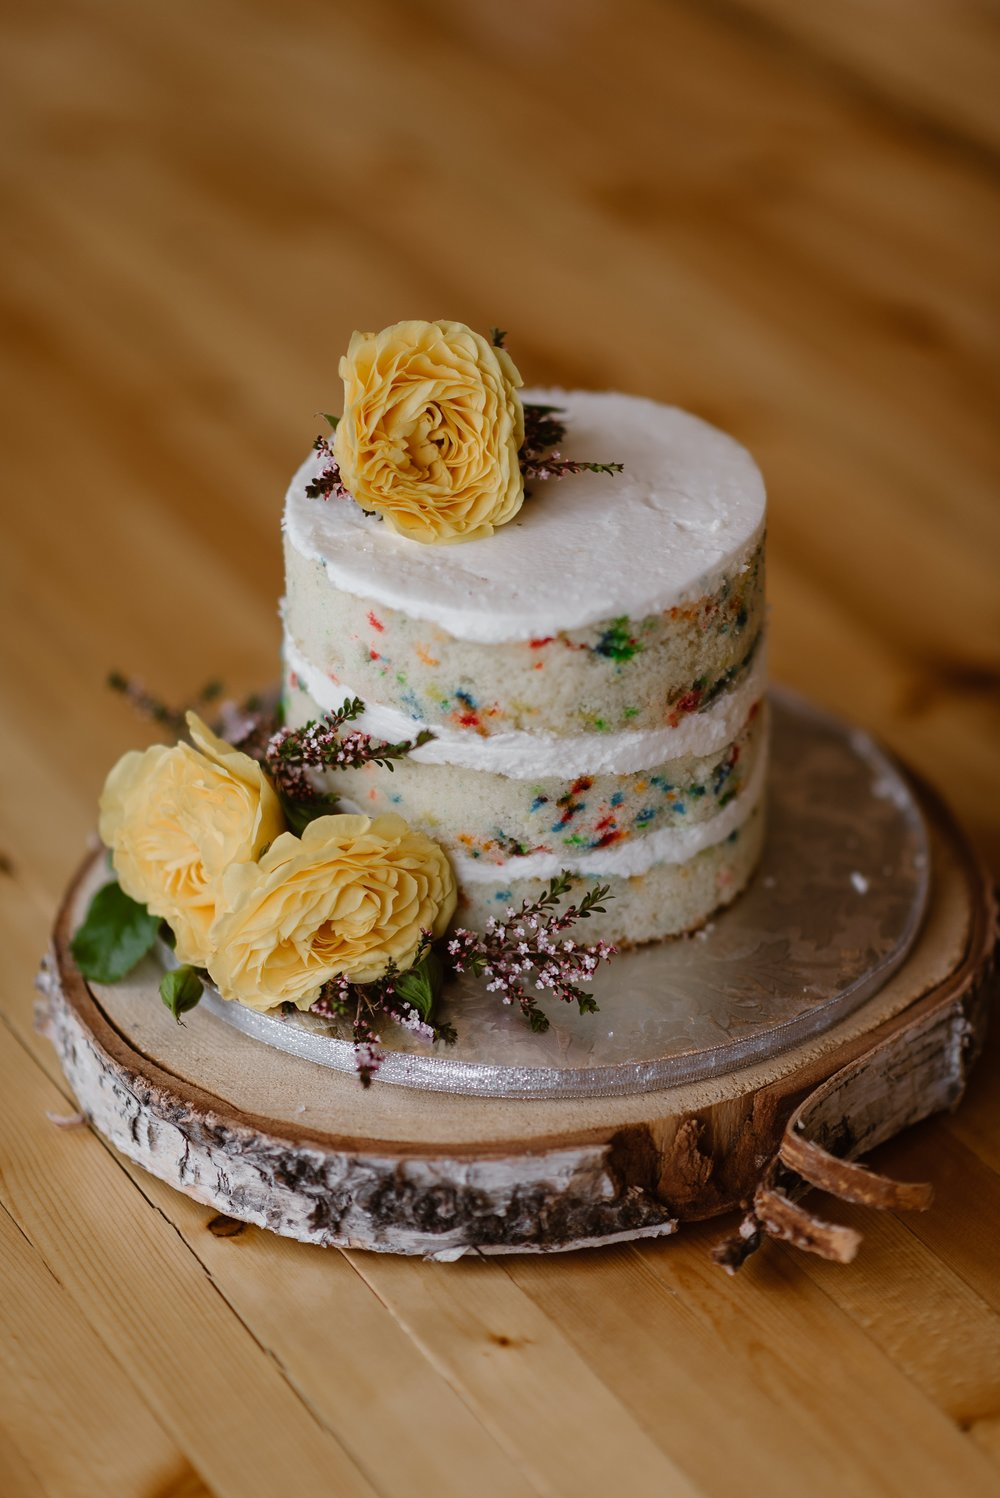 It was Connor's (the groom's) birthday on their elopement day, so Jordyn (the bride) surprised Connor with a confetti wedding cake. In this elopement photo captured by Alaska wedding photographer Adventure Instead, a tiny, frosted confetti cake sits on a sliver of cut wood. Yellow flowers adorn the cake.